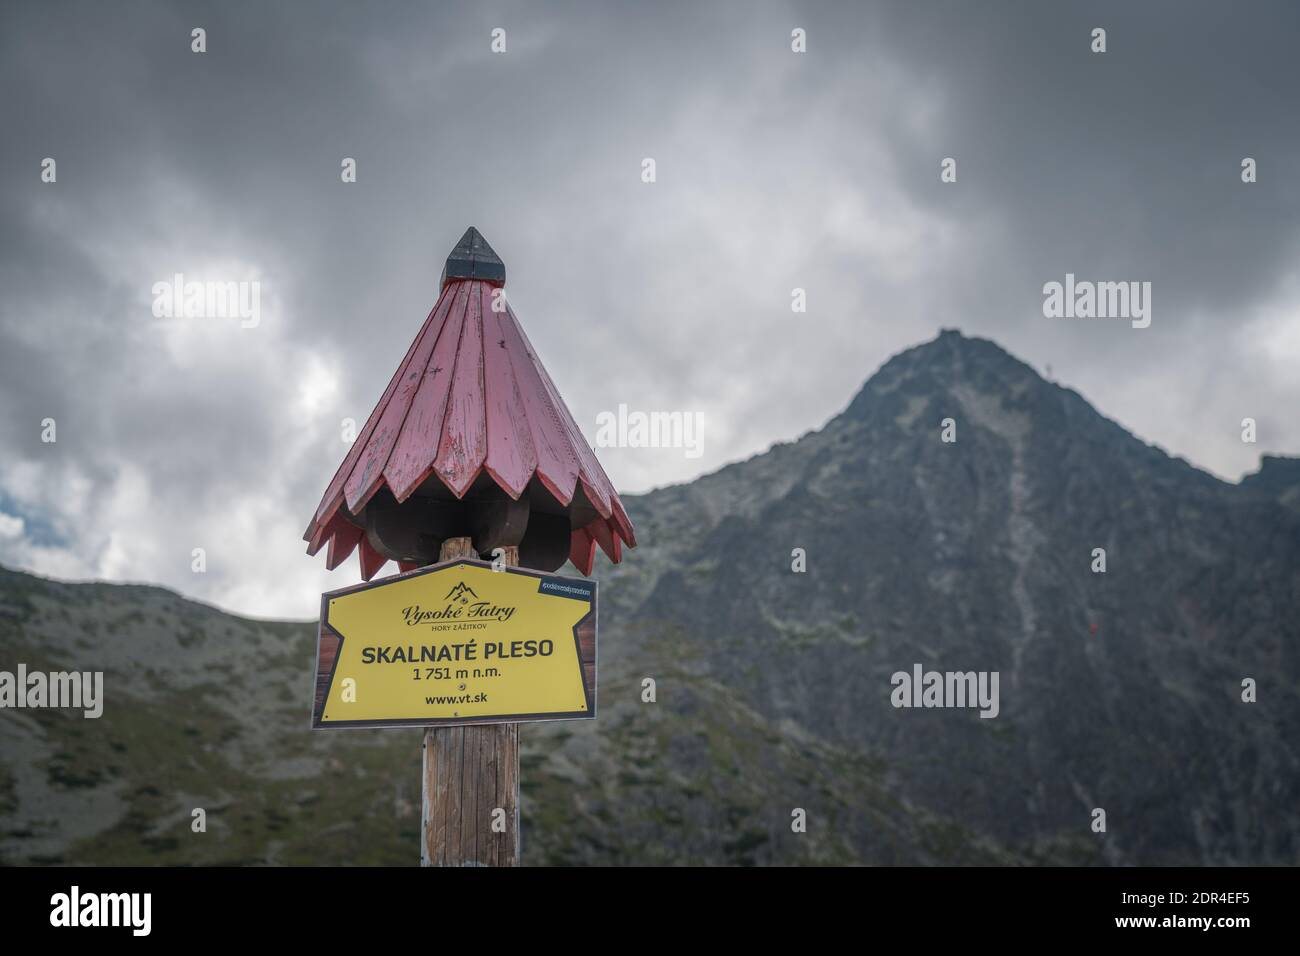 TATRANSKA LOMNICA, SLOVAKIA, AUGUST 2020 - Skalnate pleso sign on wooden pole with roof in Slovakia. It is a lake located in the High Tatras mountains Stock Photo